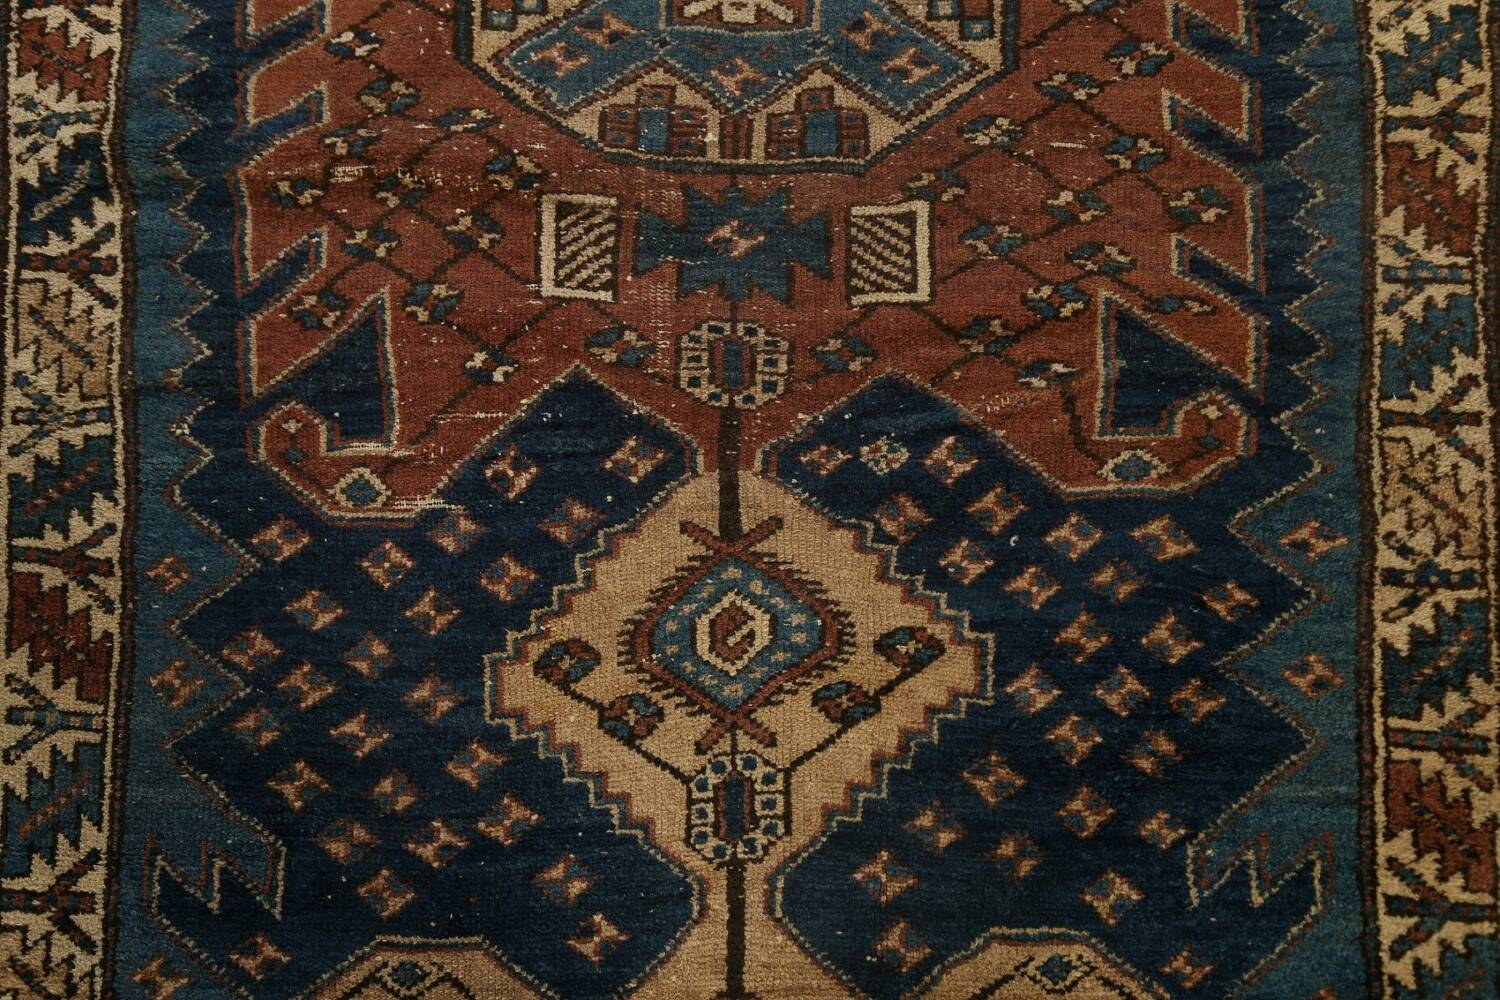 Pre-1900 Antique Vegetable Dye Malayer Persian Runner Rug 4x13 image 4